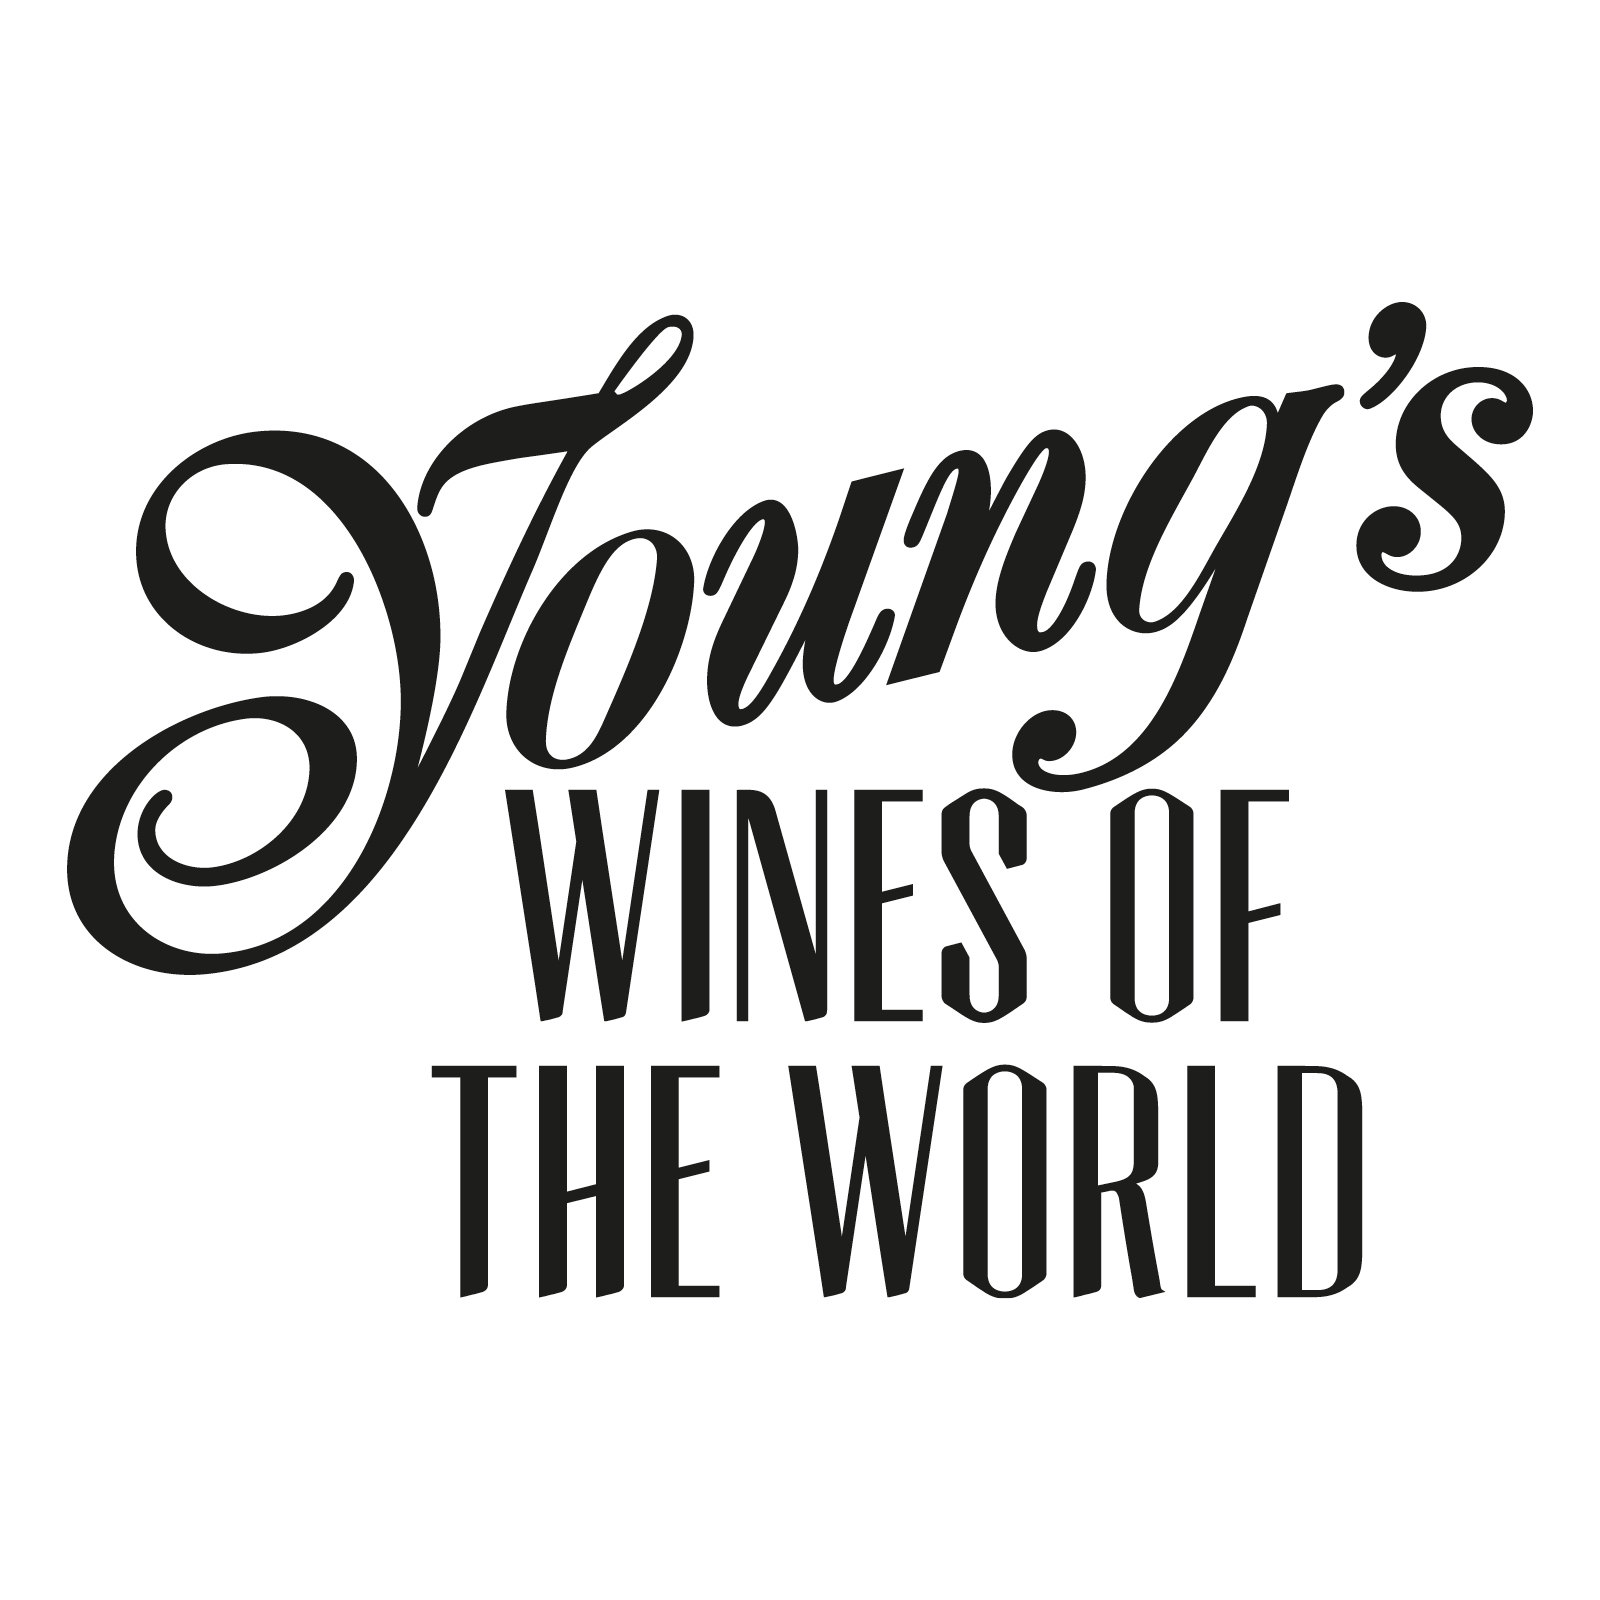 Youngs Wines Of The World   Branding   By James-Lee Duffy